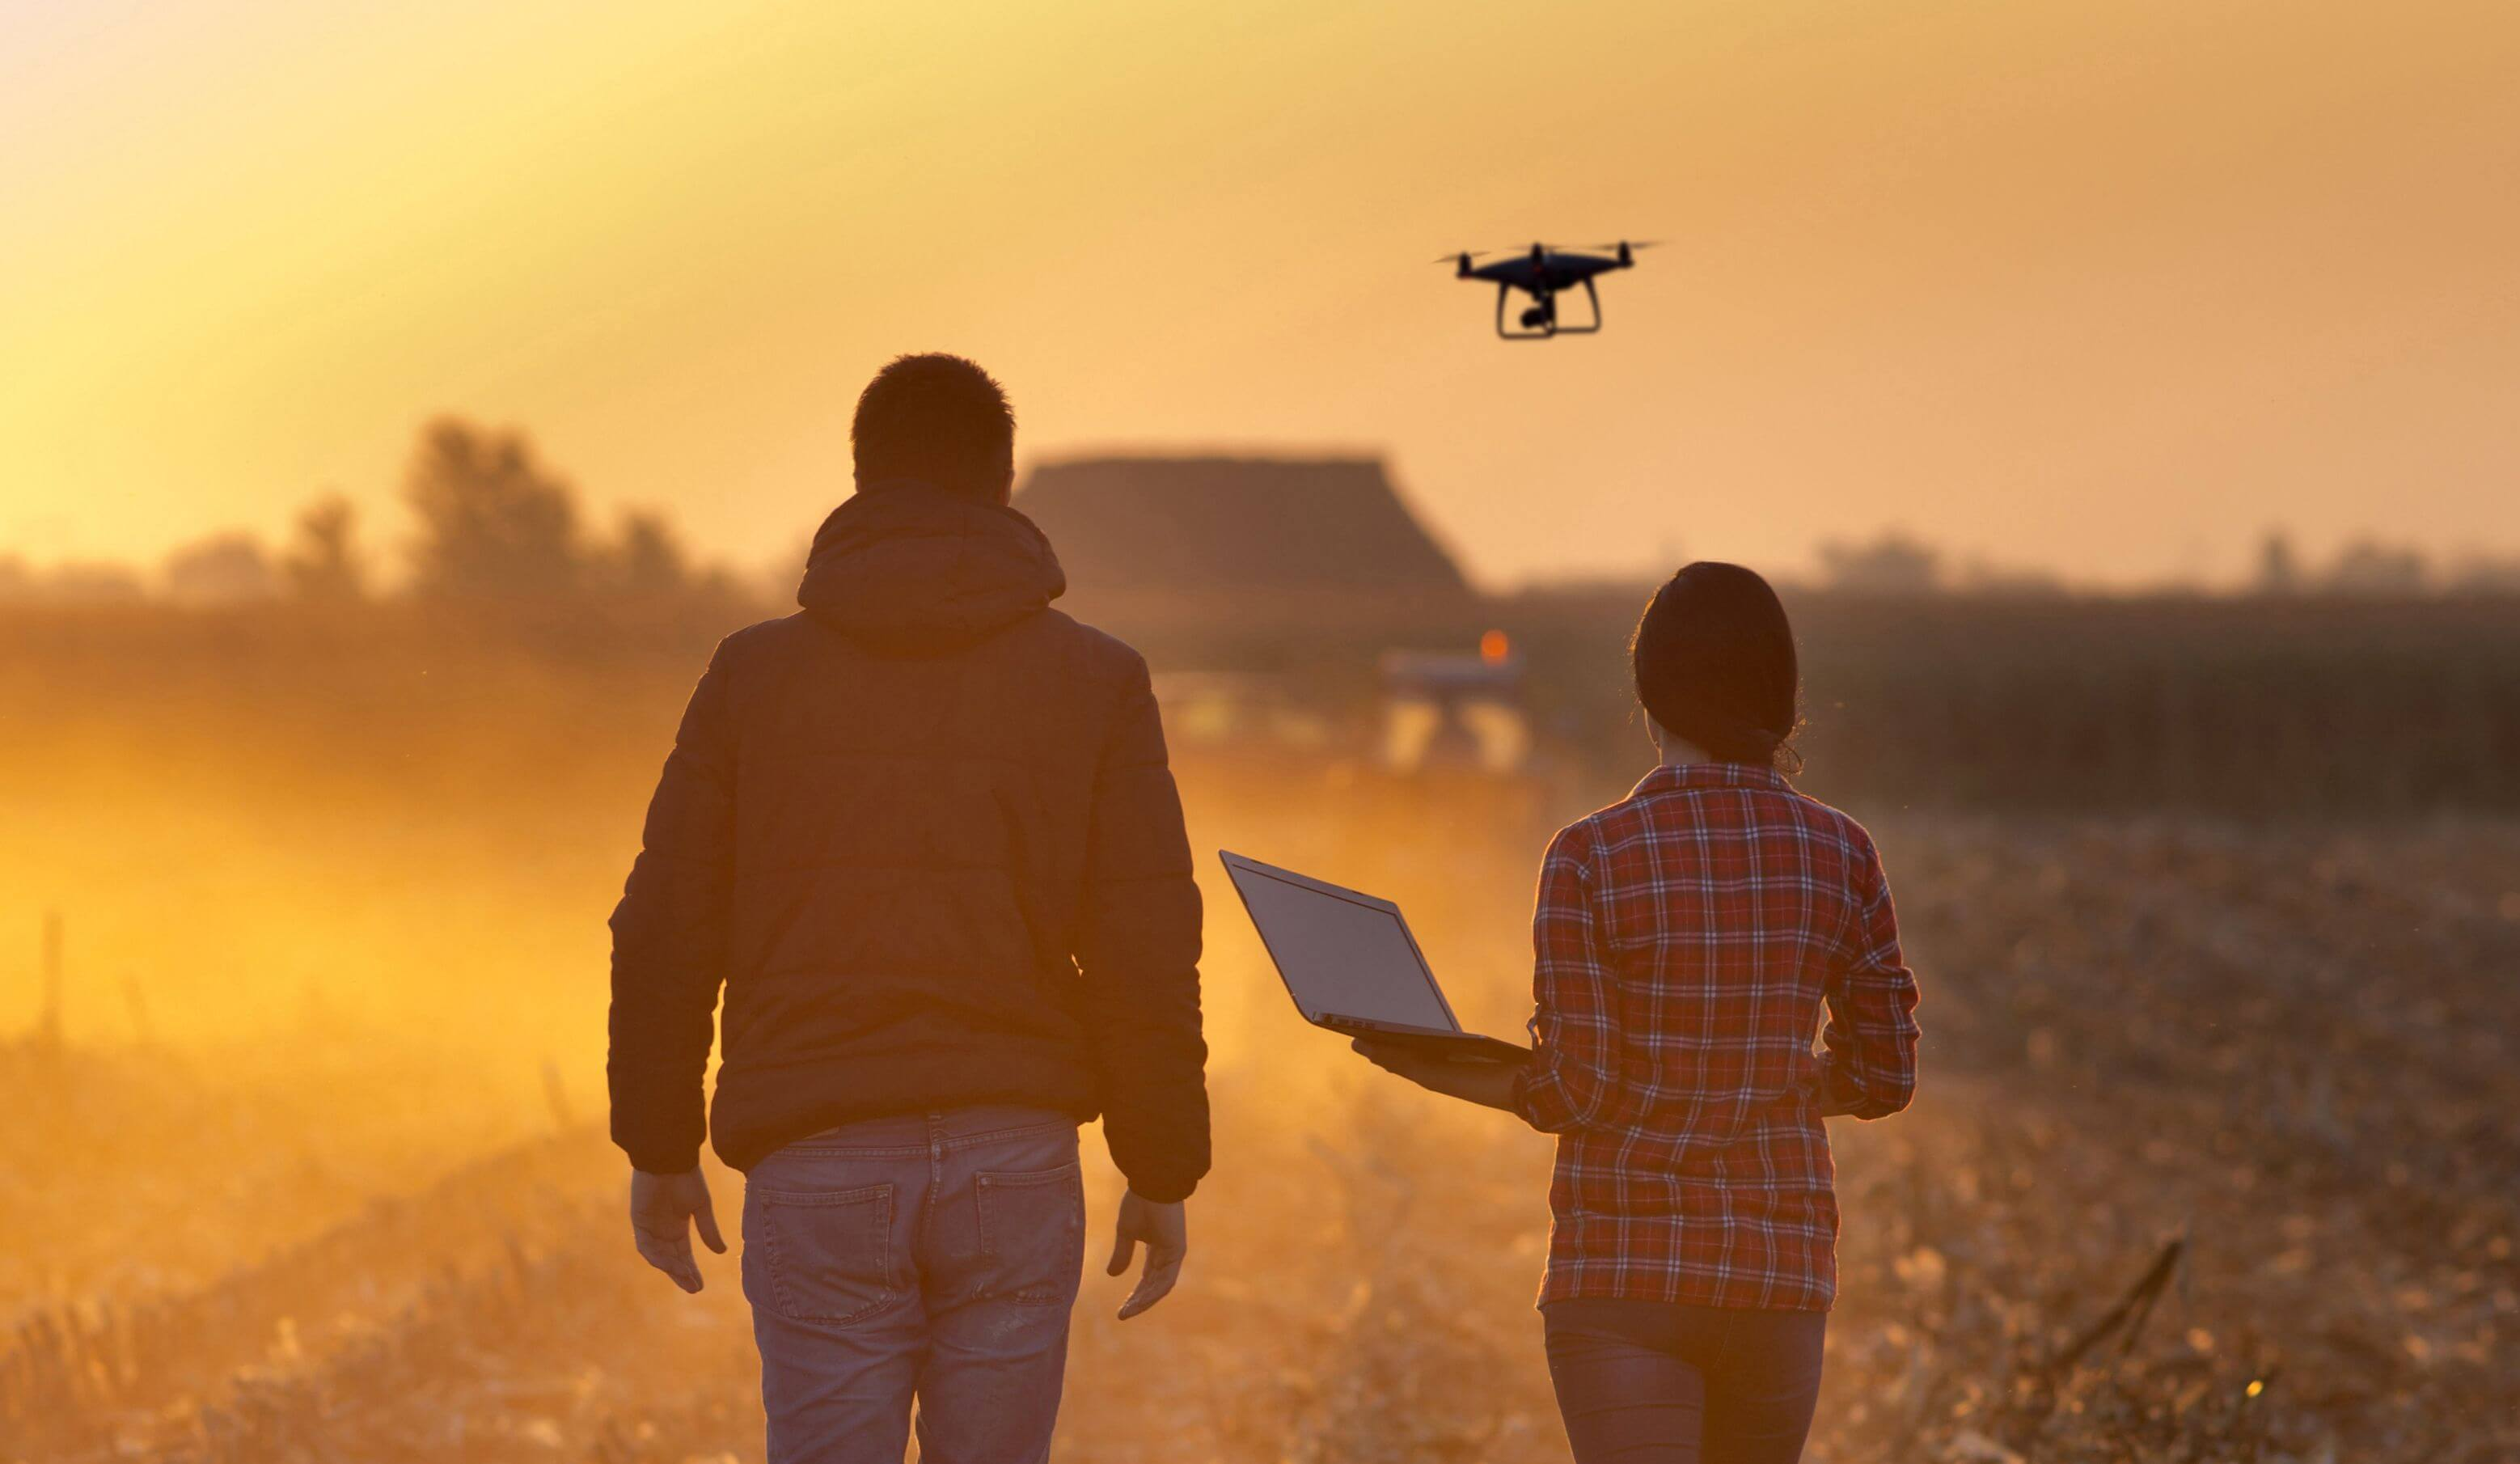 Technological innovation in agriculture